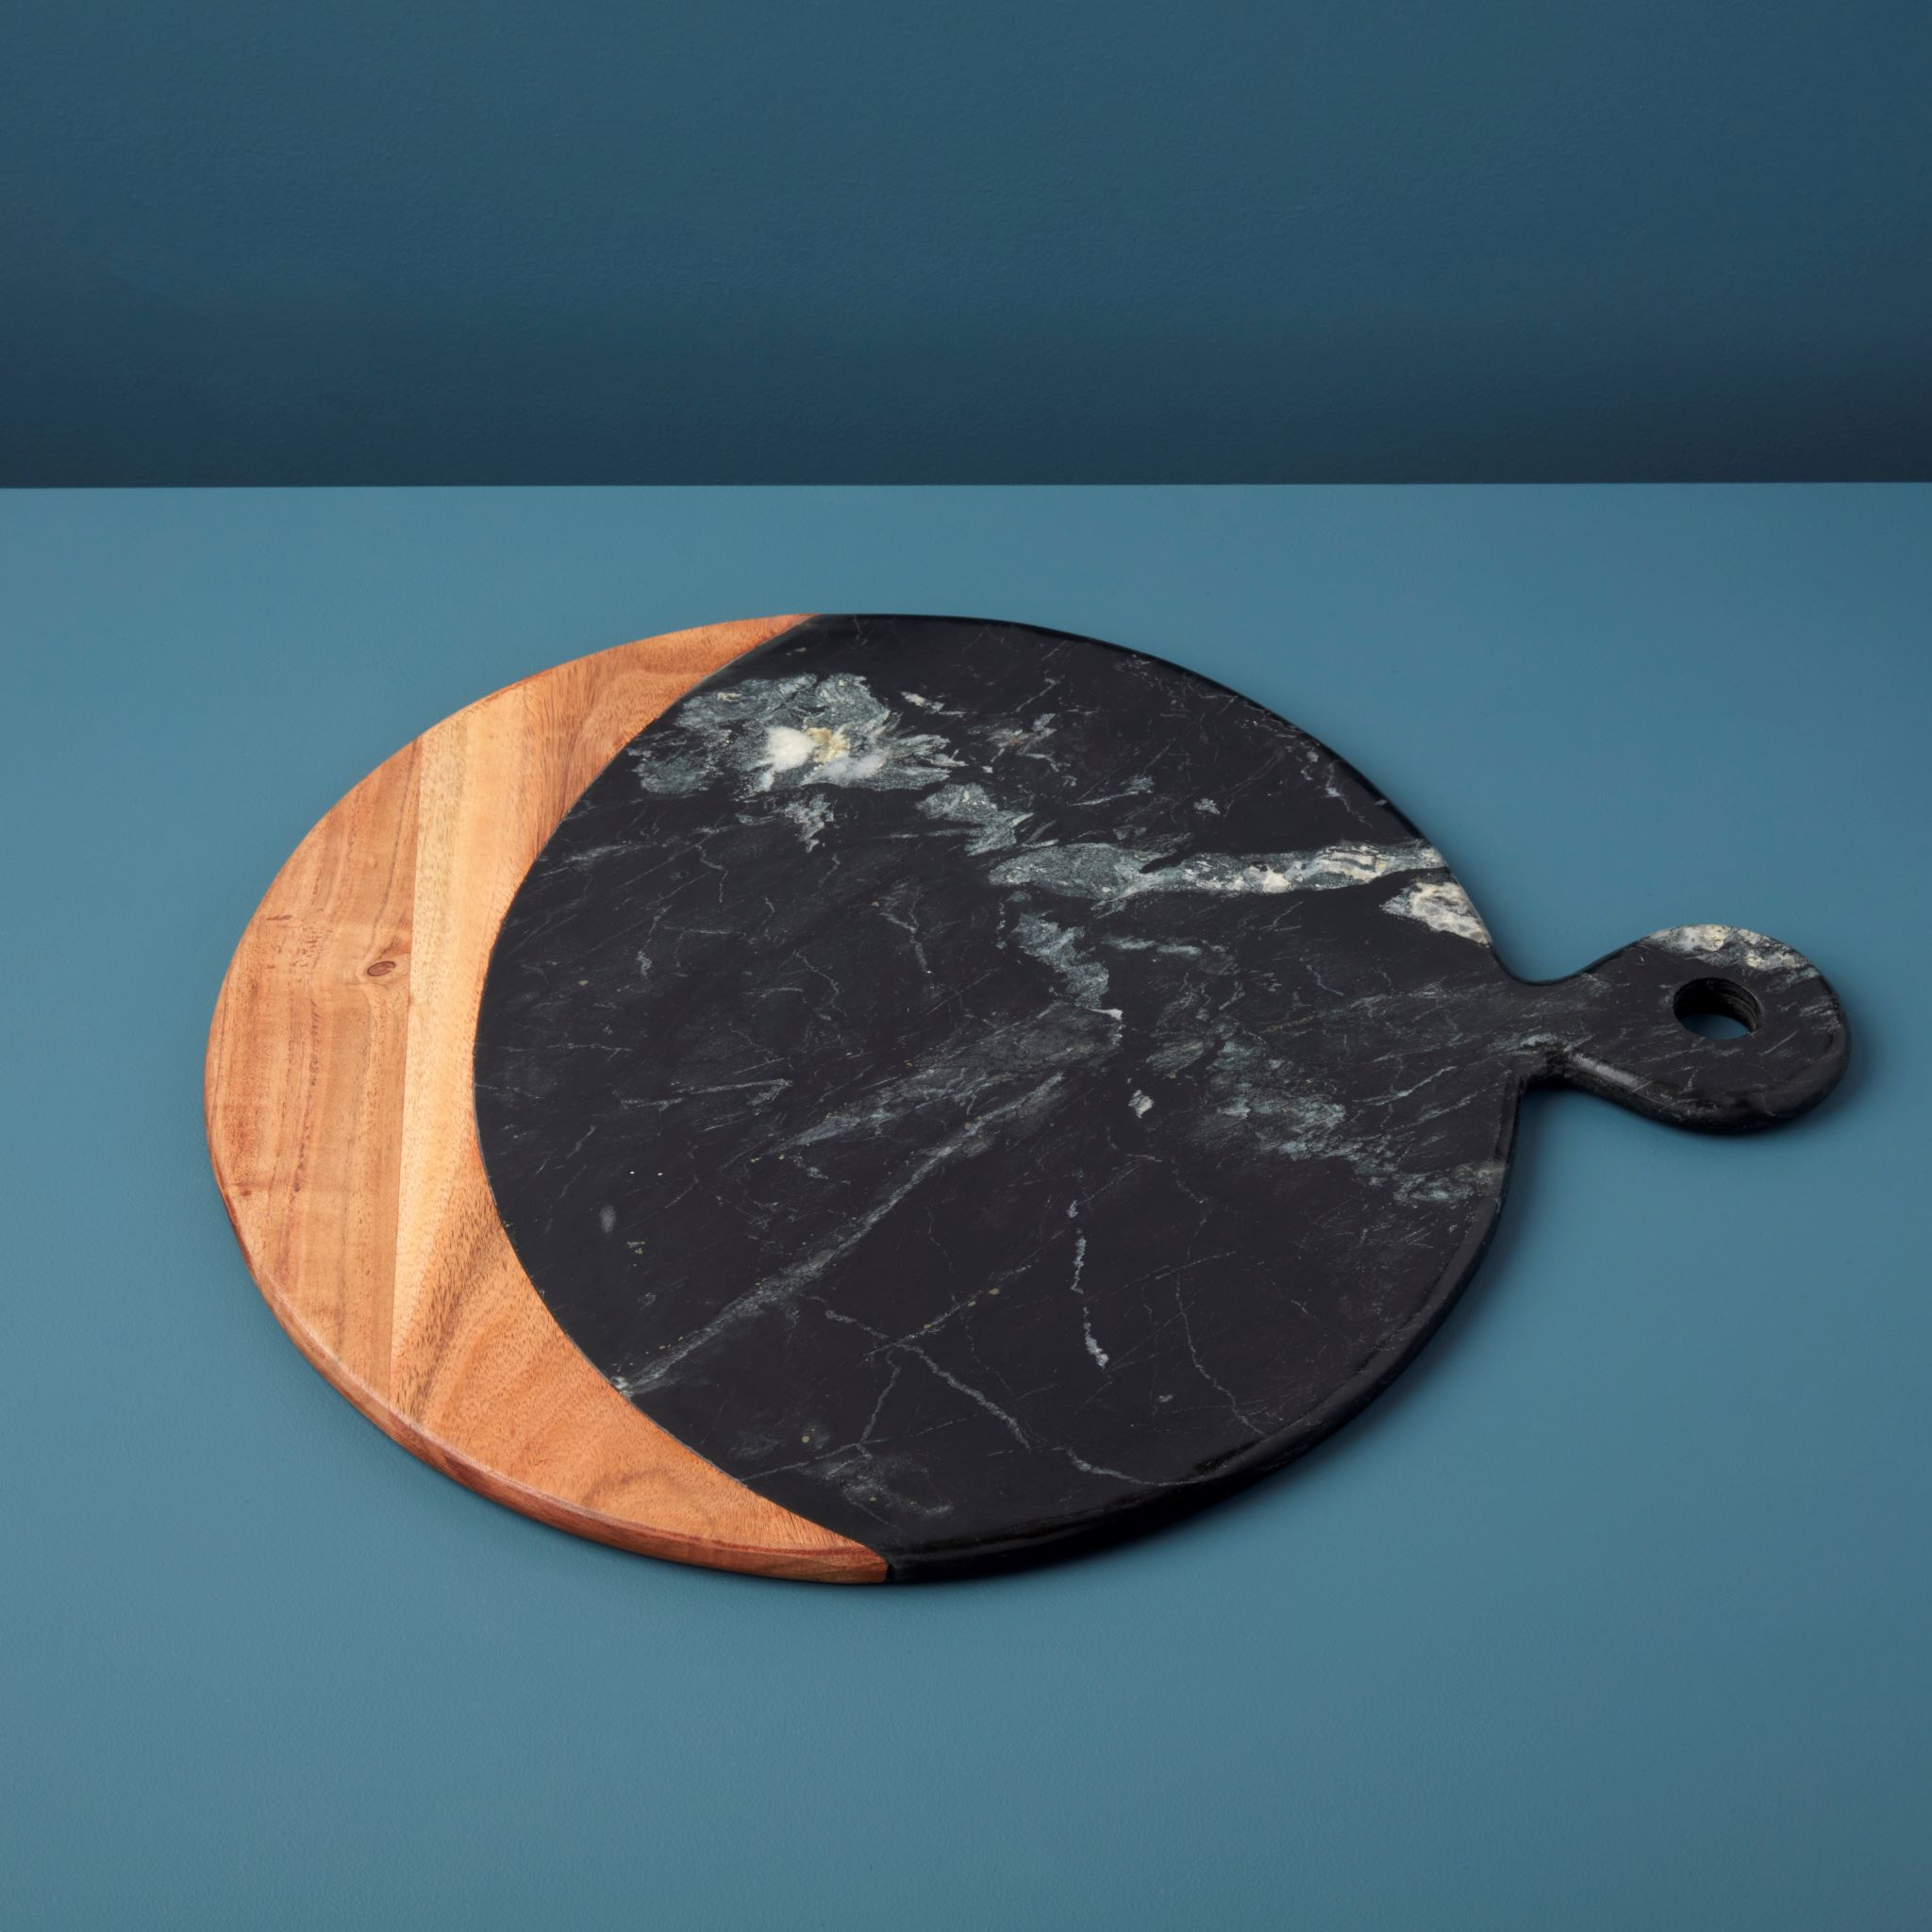 BeHome Marine Black Marble Acacia Oversized Round Board with Handle 58 460